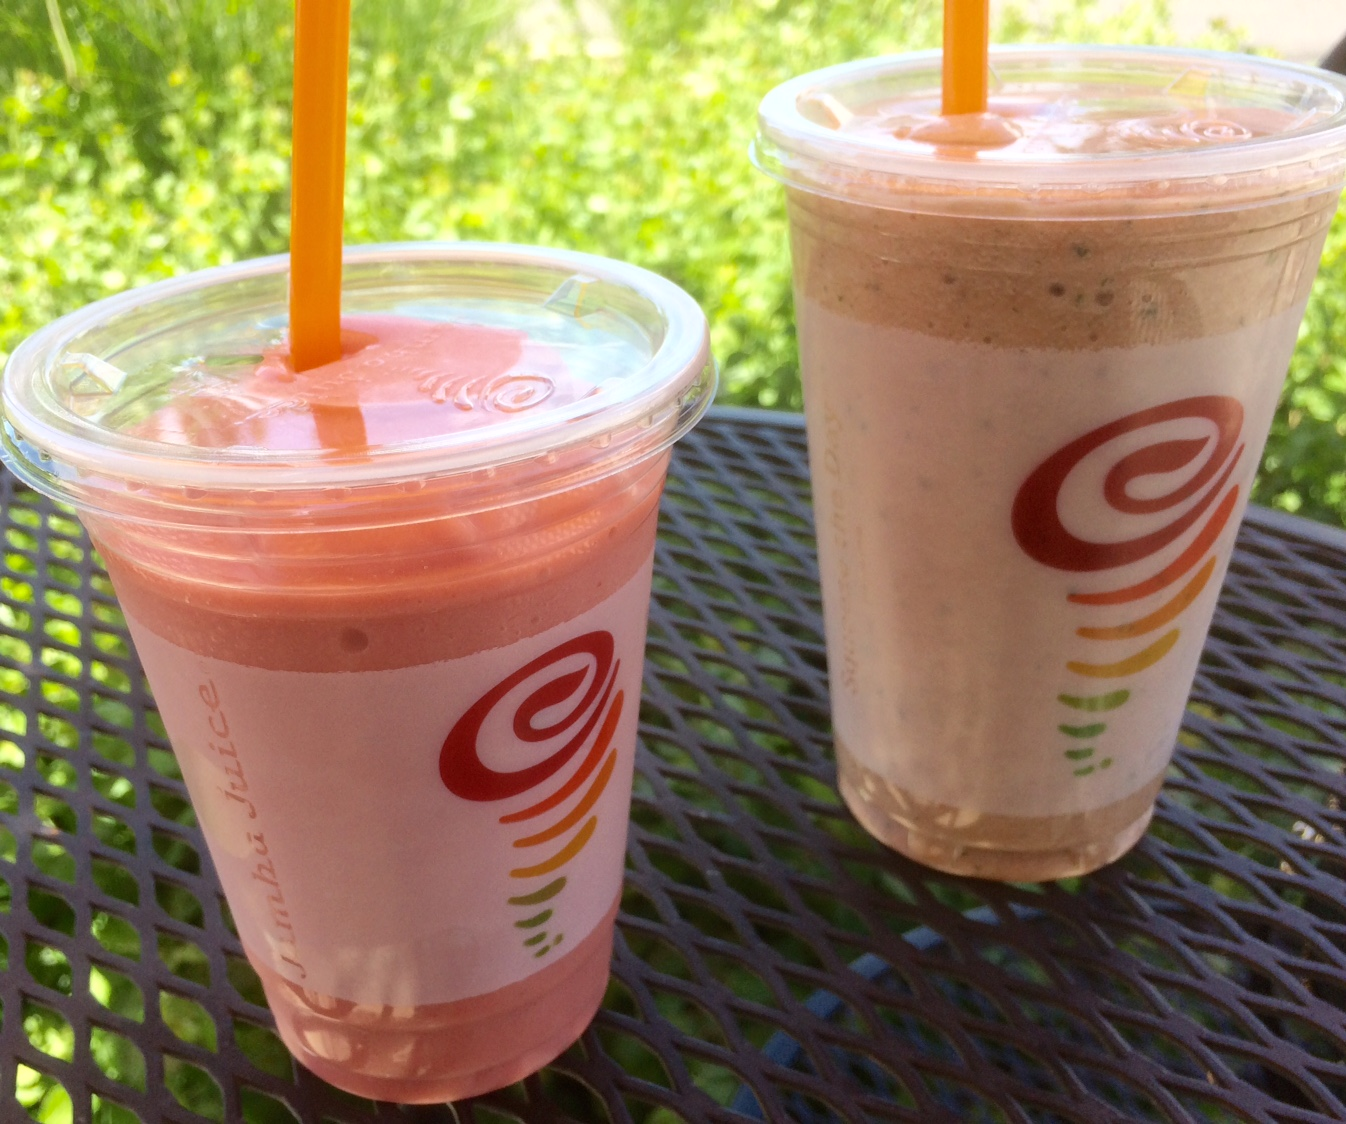 Taste-Testing Jamba Juice's New Poolside Fit and Watermelon Breeze Smoothies